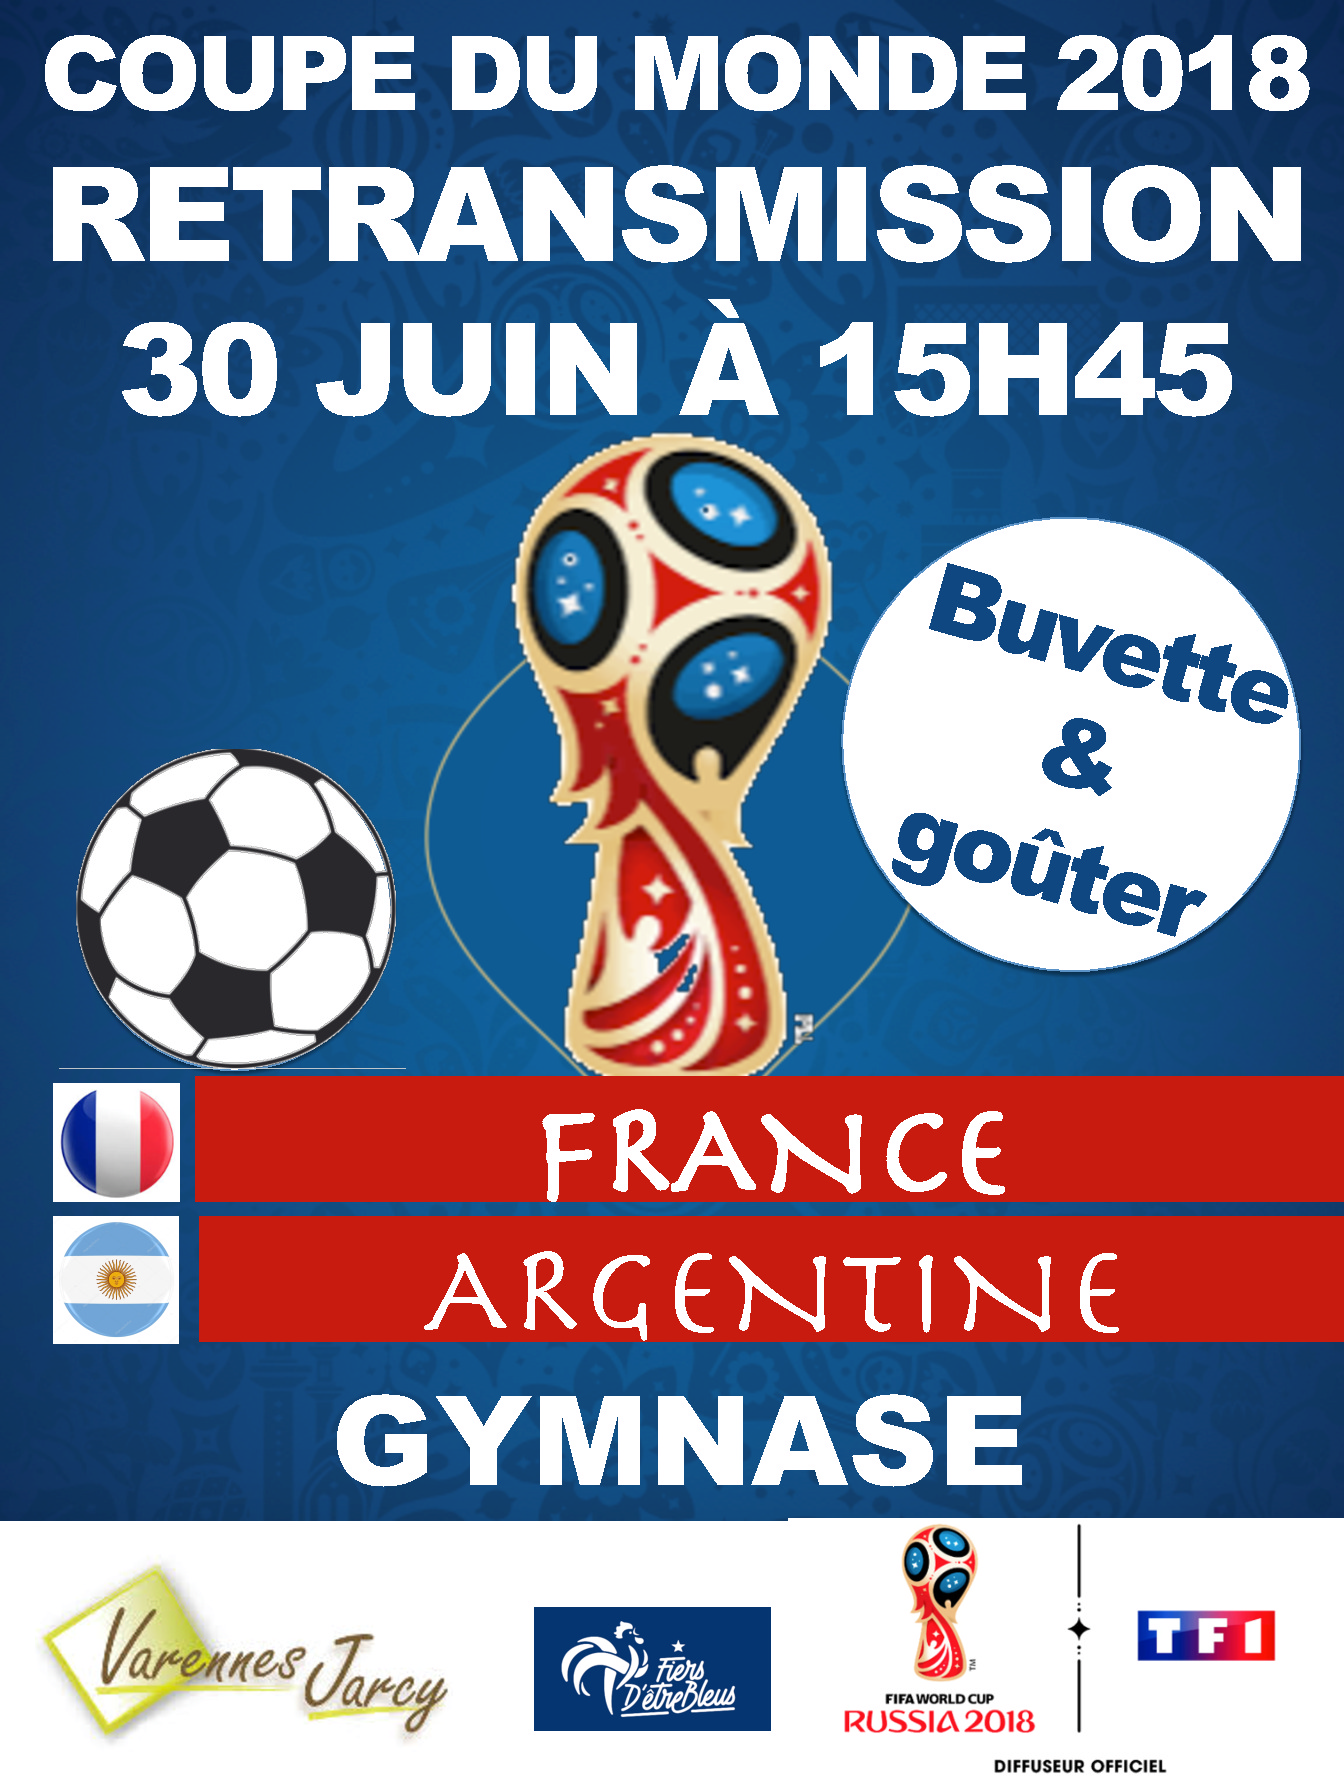 thumbnail of affiche retransmission coupe du monde_huitieme